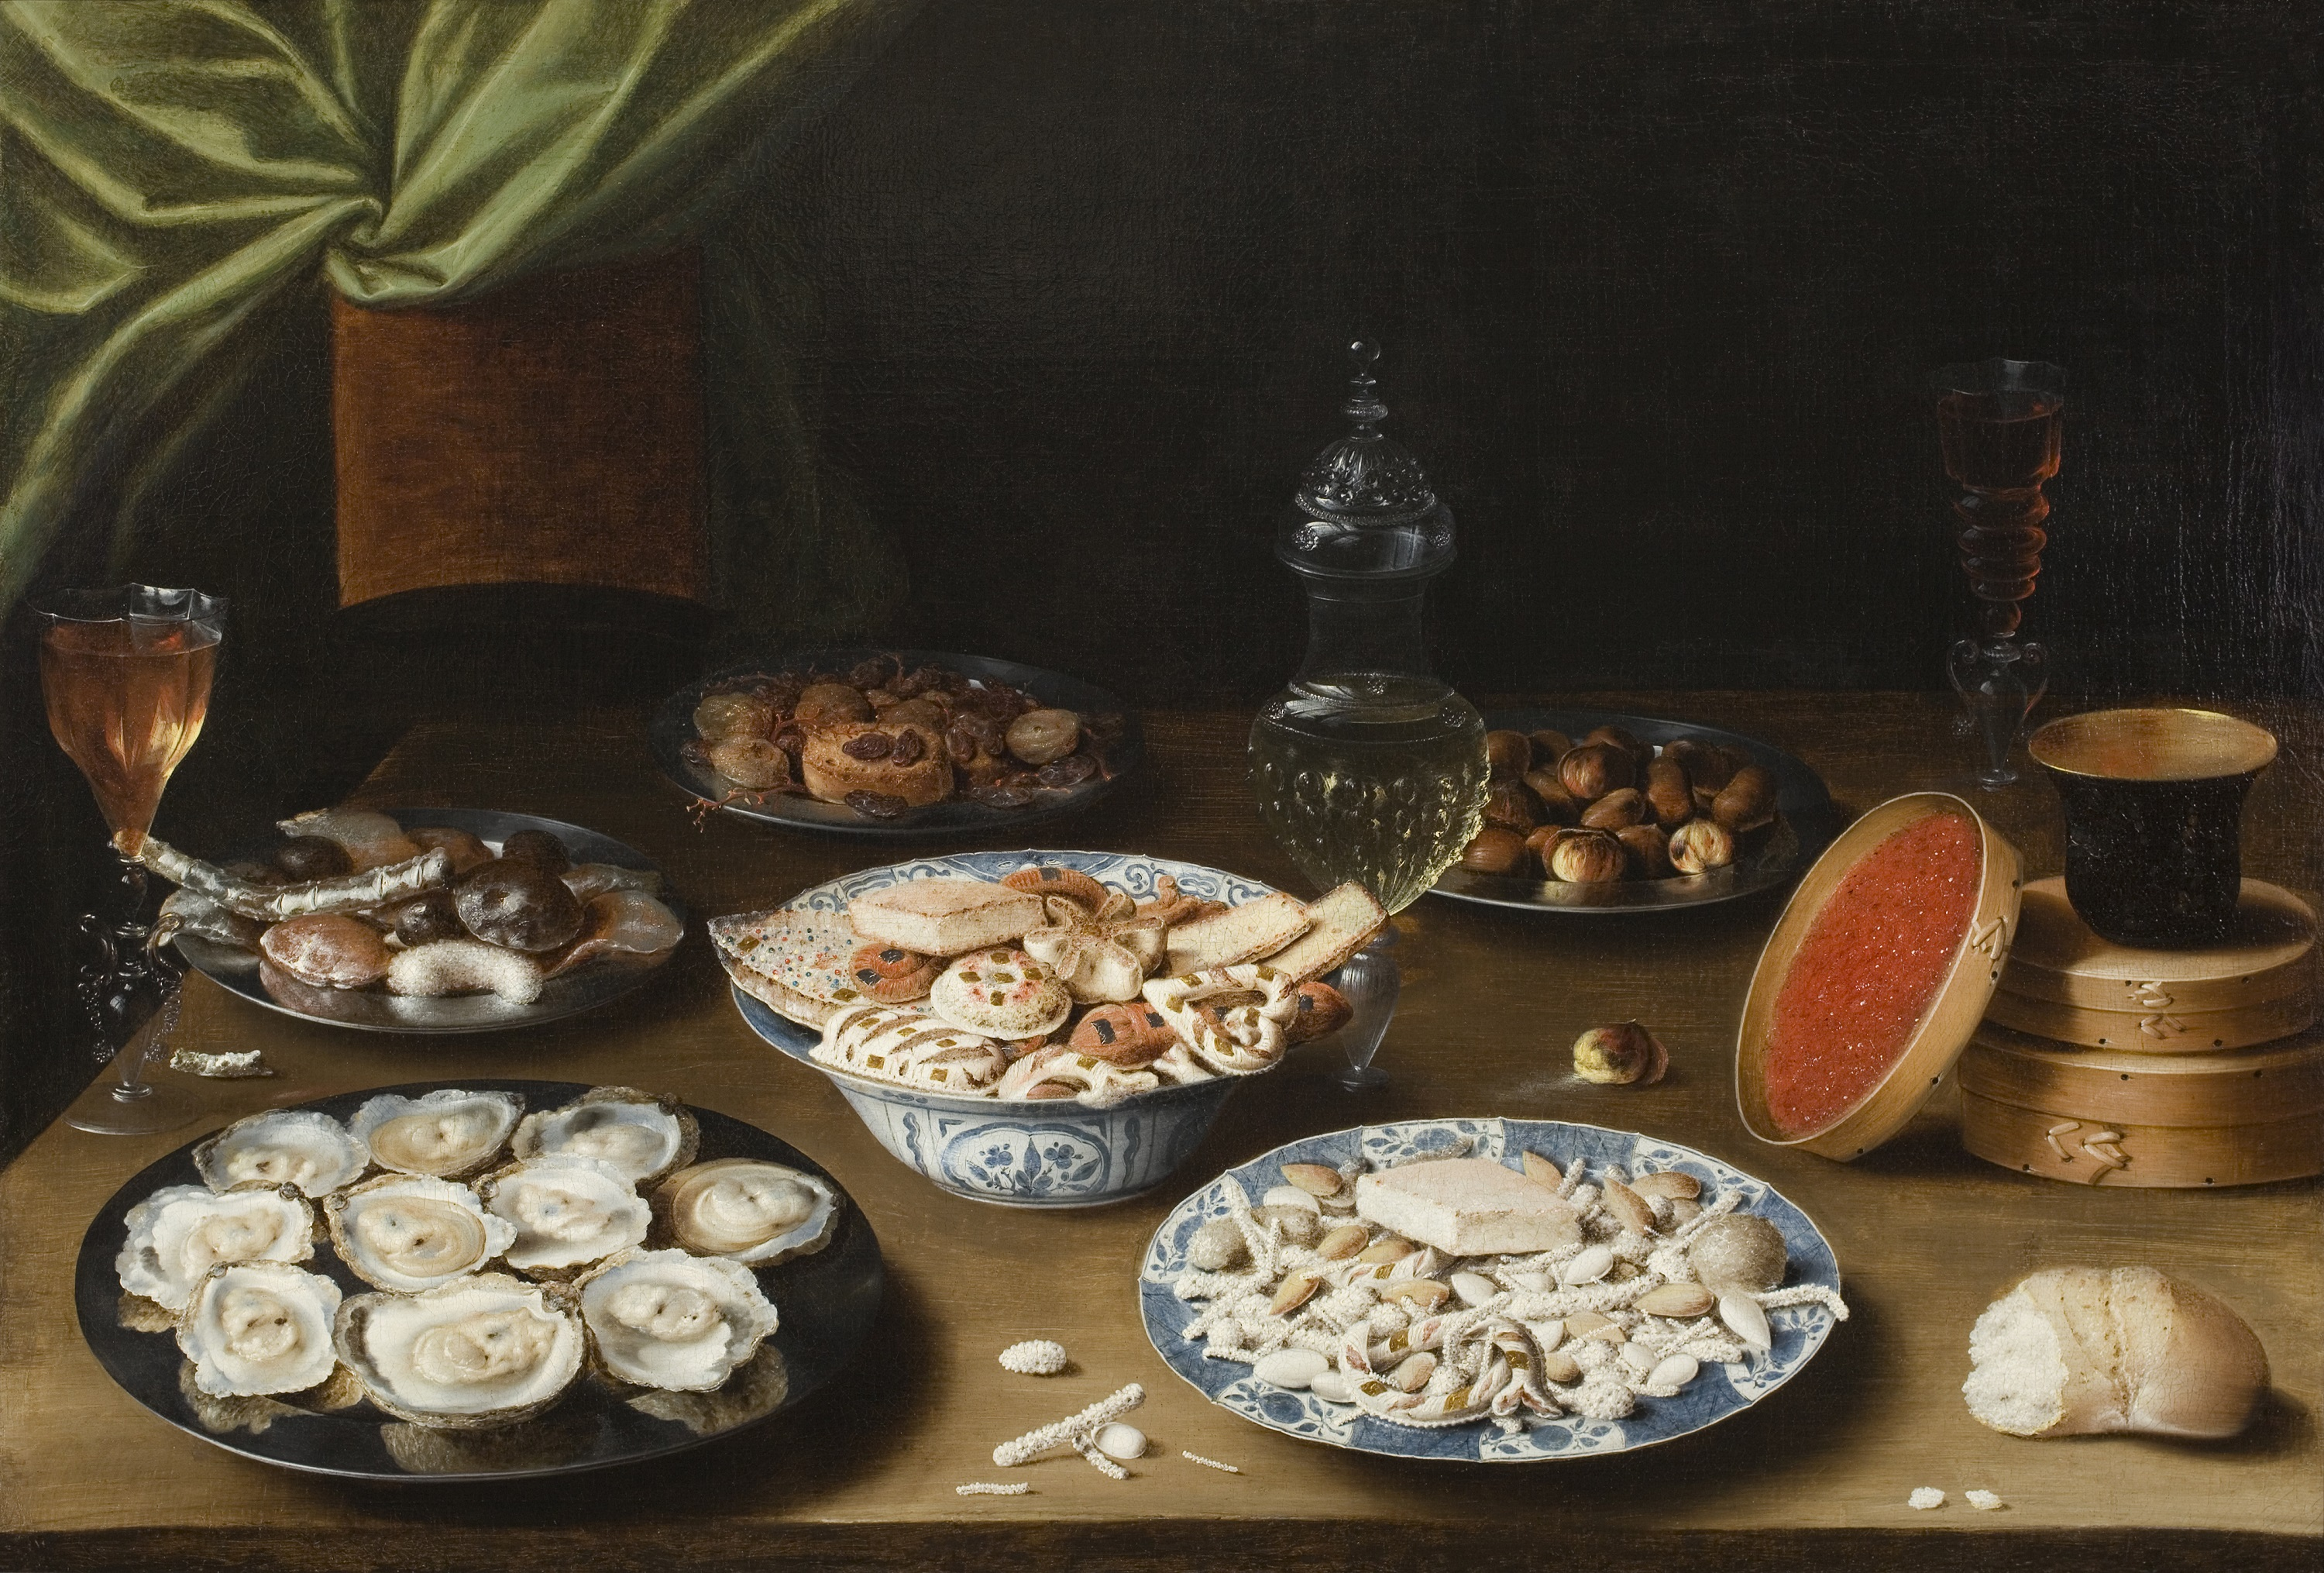 Massive gift of Dutch art is a coup for MFA - The Boston Globe